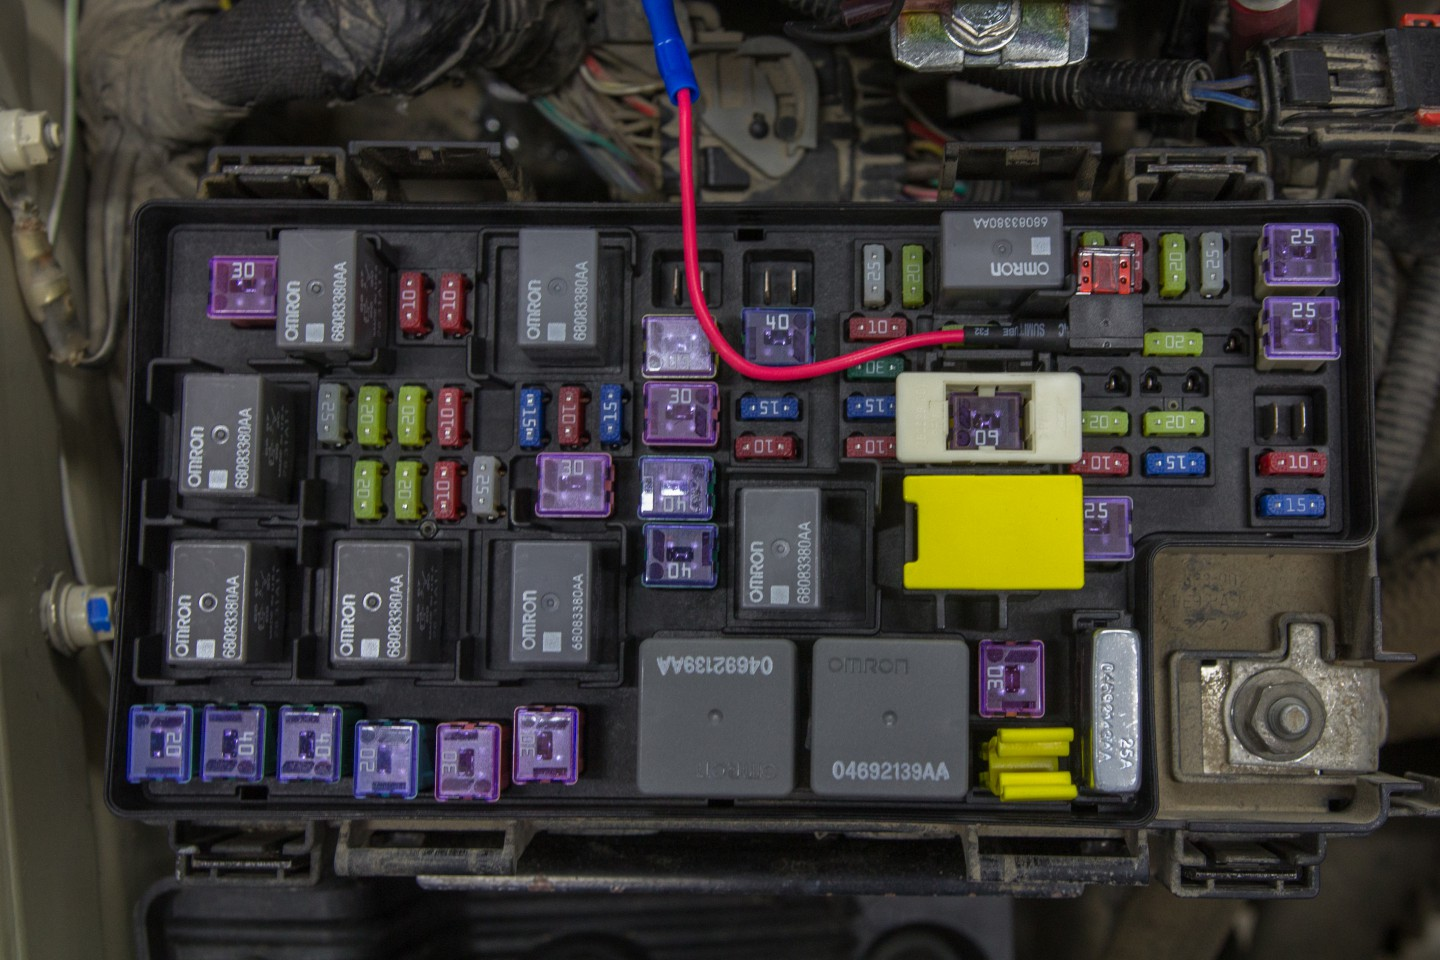 jk wrangler dual batteries trigger wire in fuse block 1440x960 diy jeep wrangler jk isolated dual batteries the road chose me 2012 jeep wrangler fuse diagram at mifinder.co